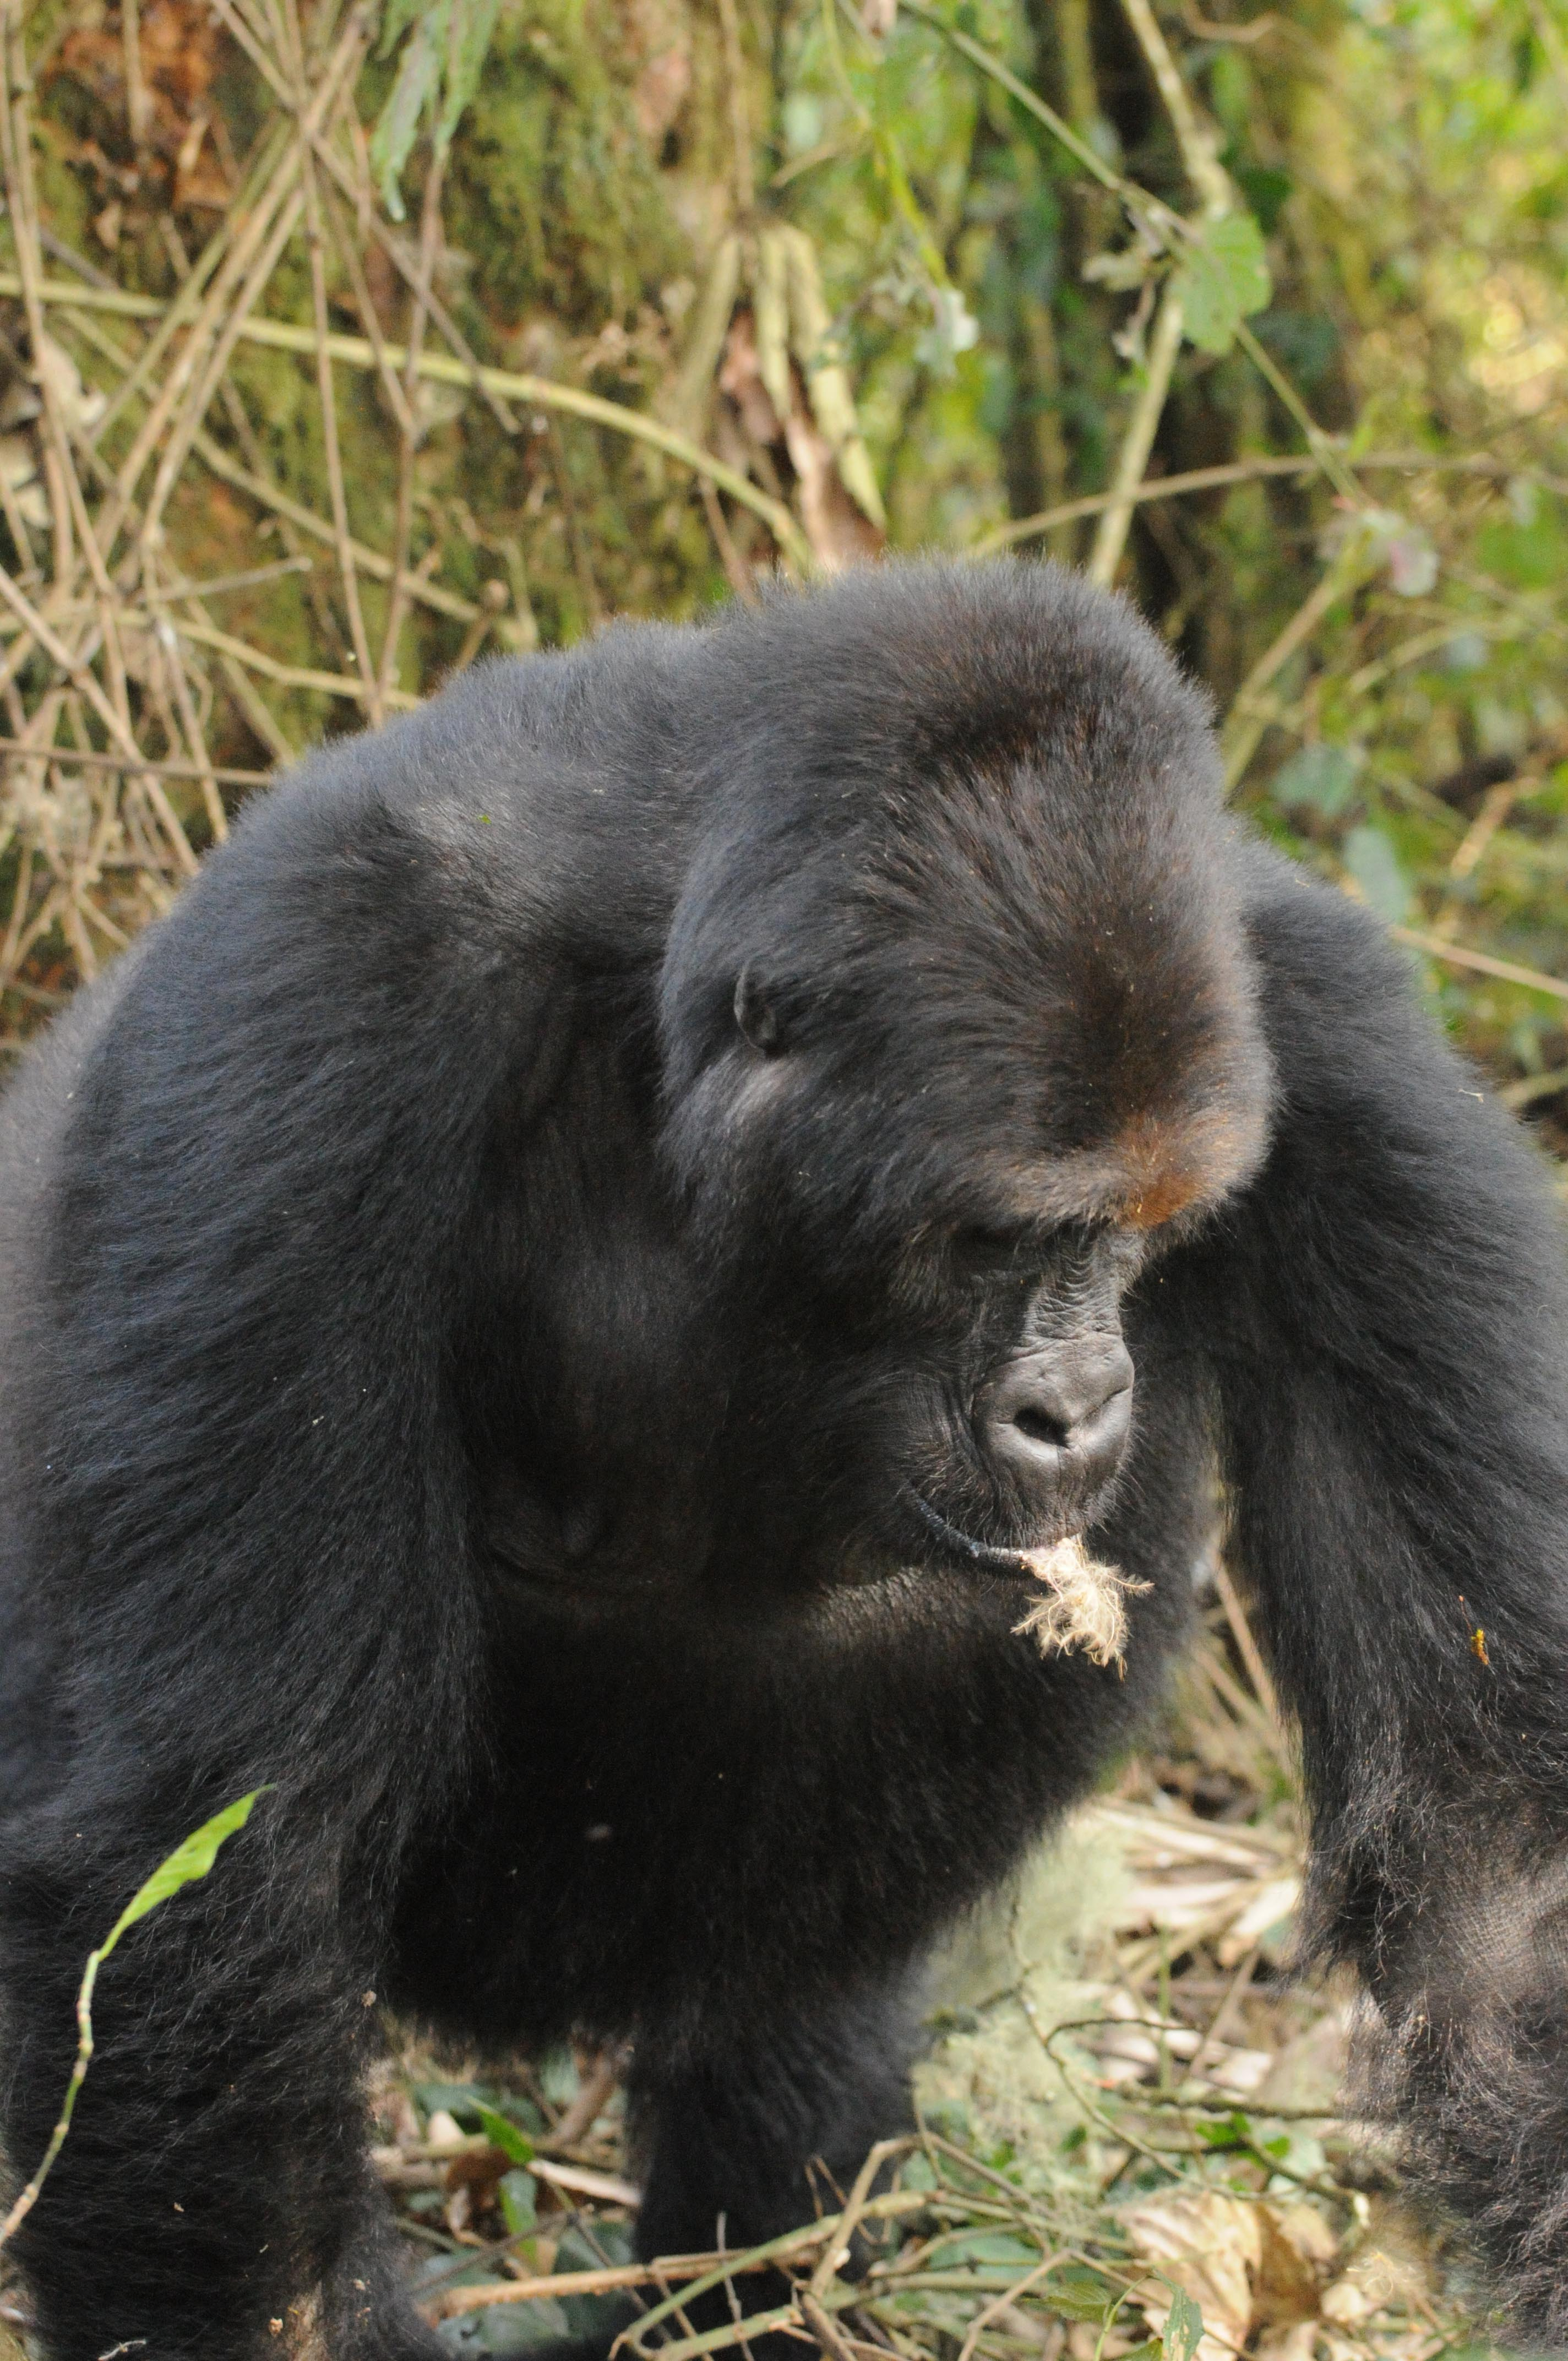 World's Largest Primates Are on the Brink of Vanishing